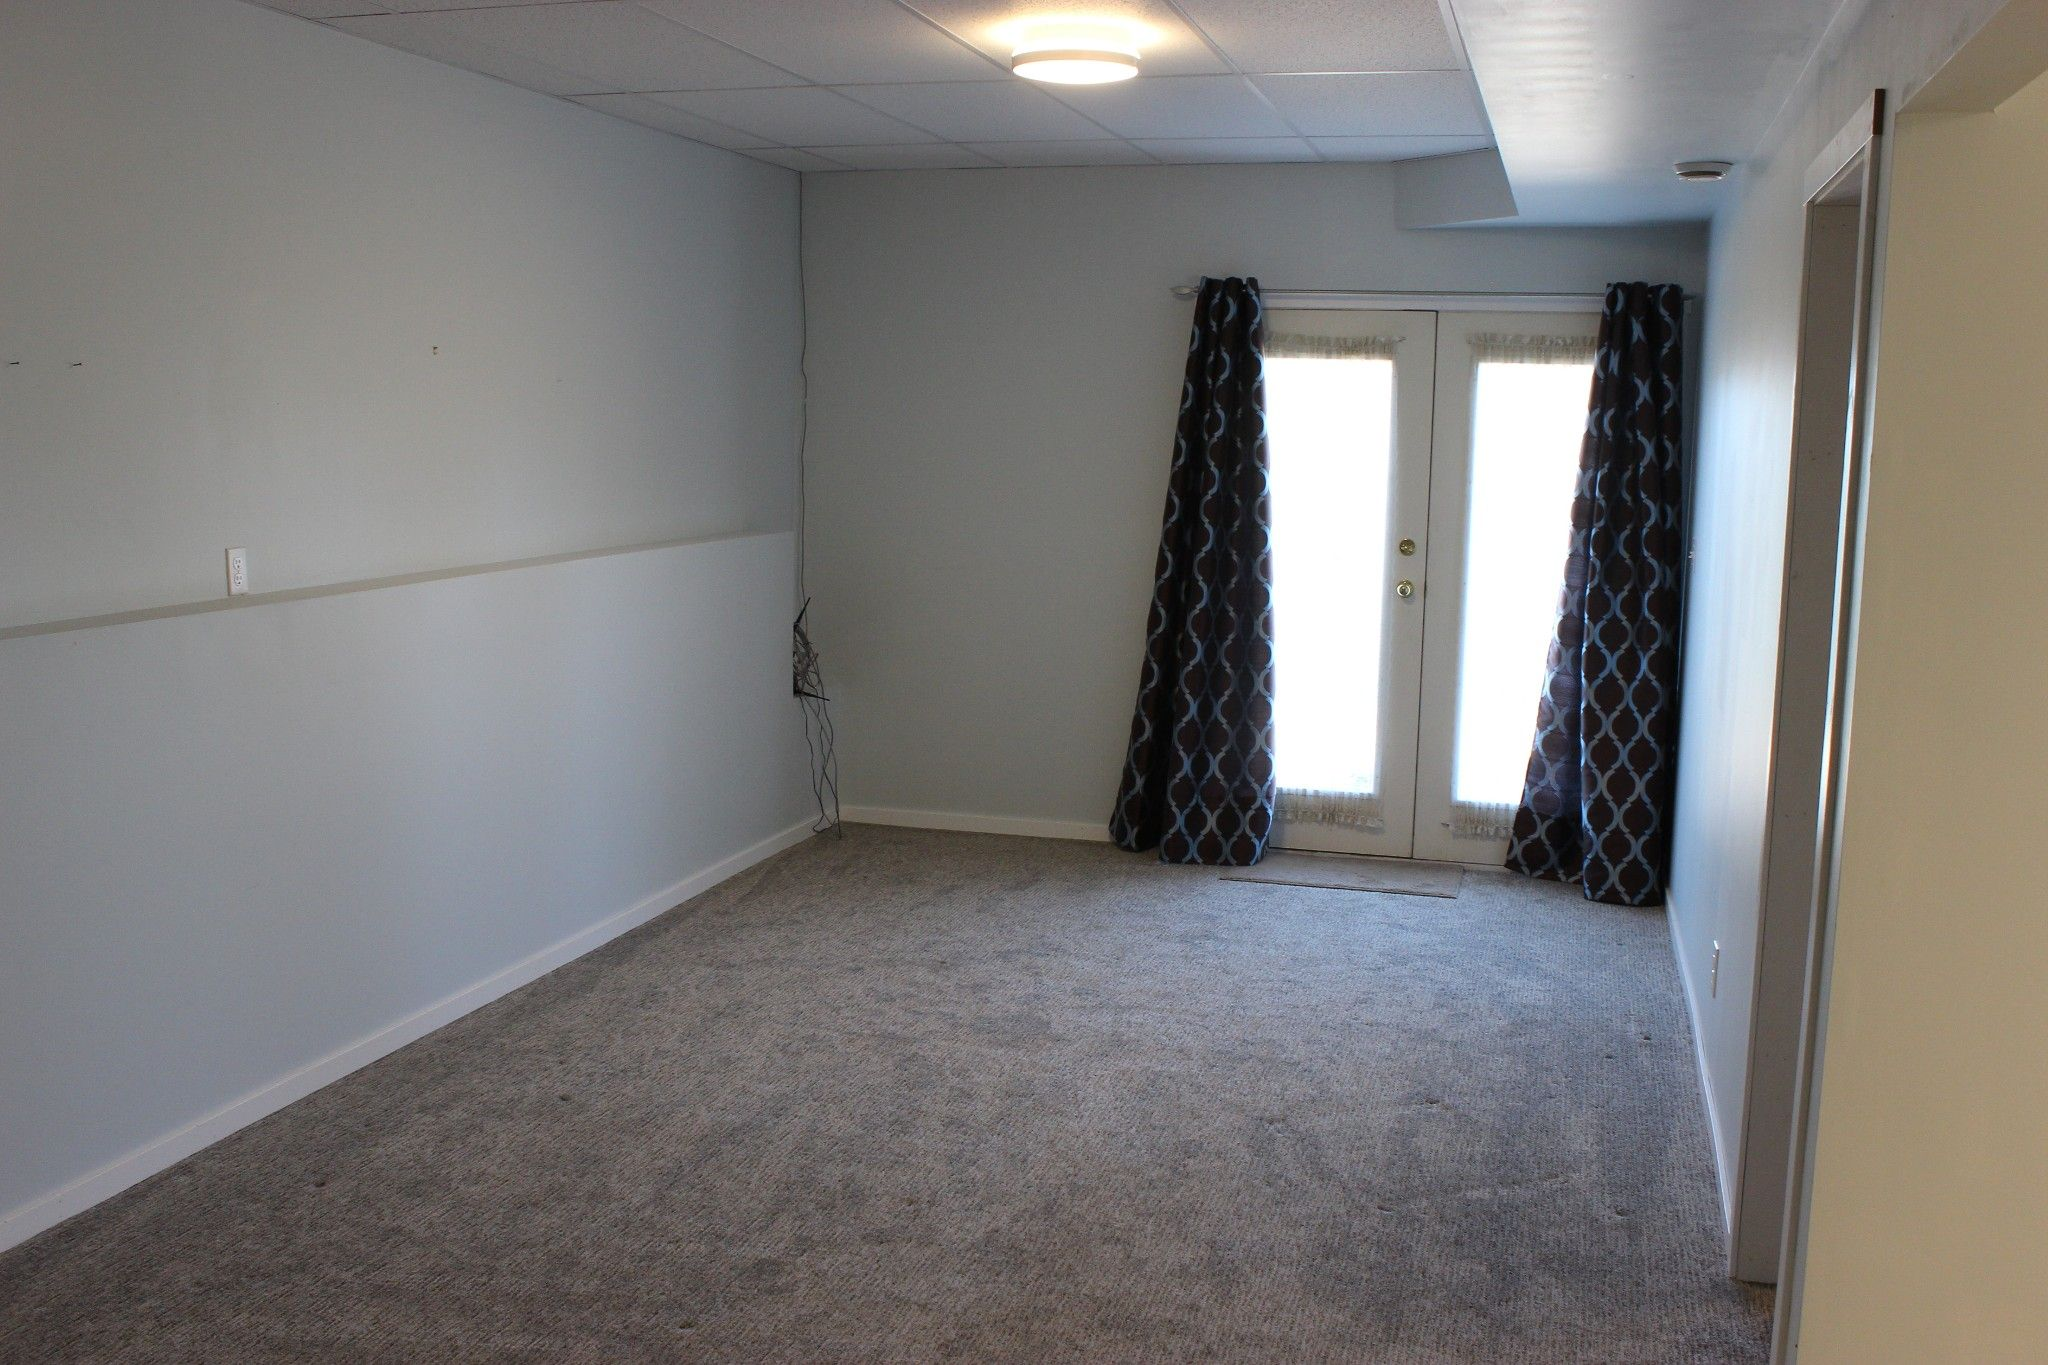 Photo 13: Photos: 4 1580 Springhill Drive in Kamloops: Sahali Townhouse for sale : MLS®# 156043